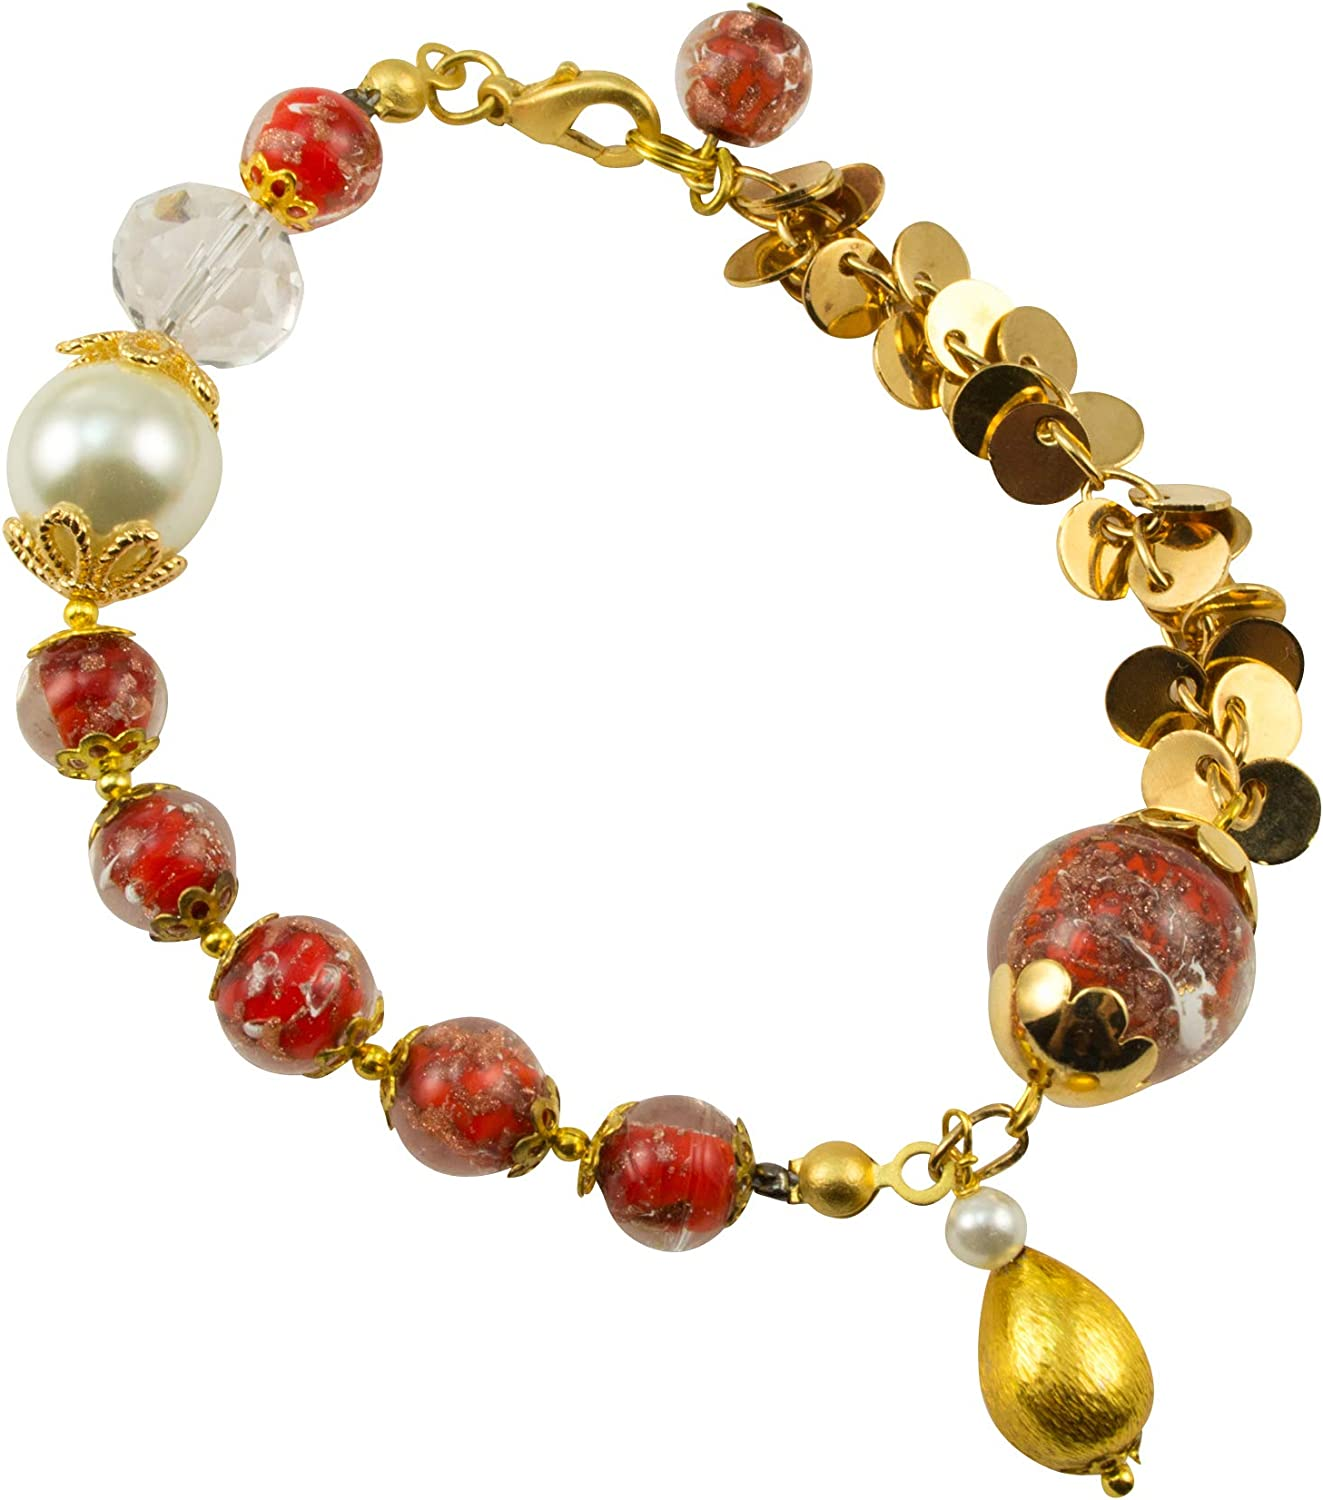 Just Give Very popular Me Jewels Genuine Sommerso Venice Murano Aventurina Gl Sales for sale